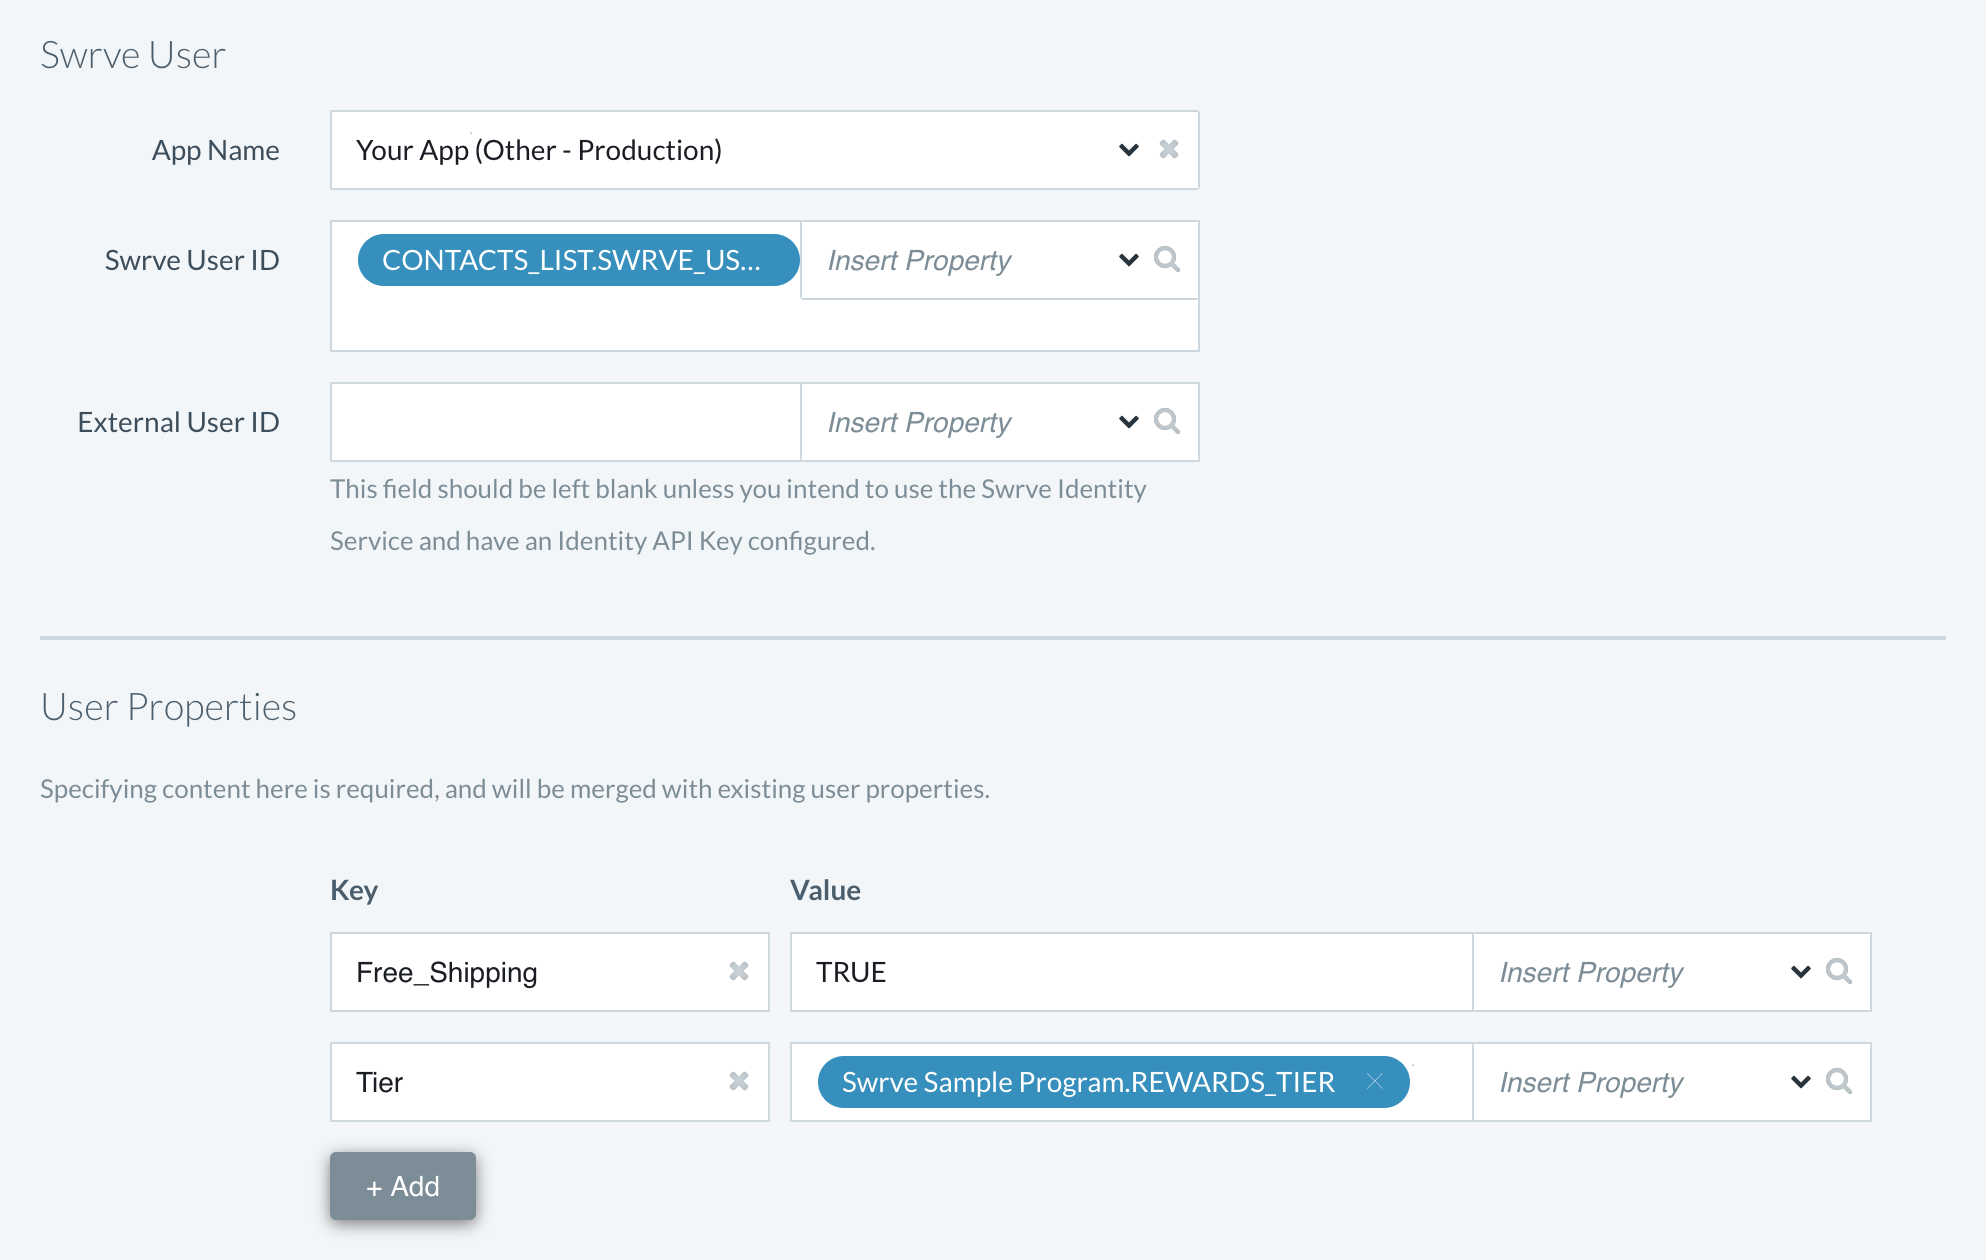 Update User Properties with values